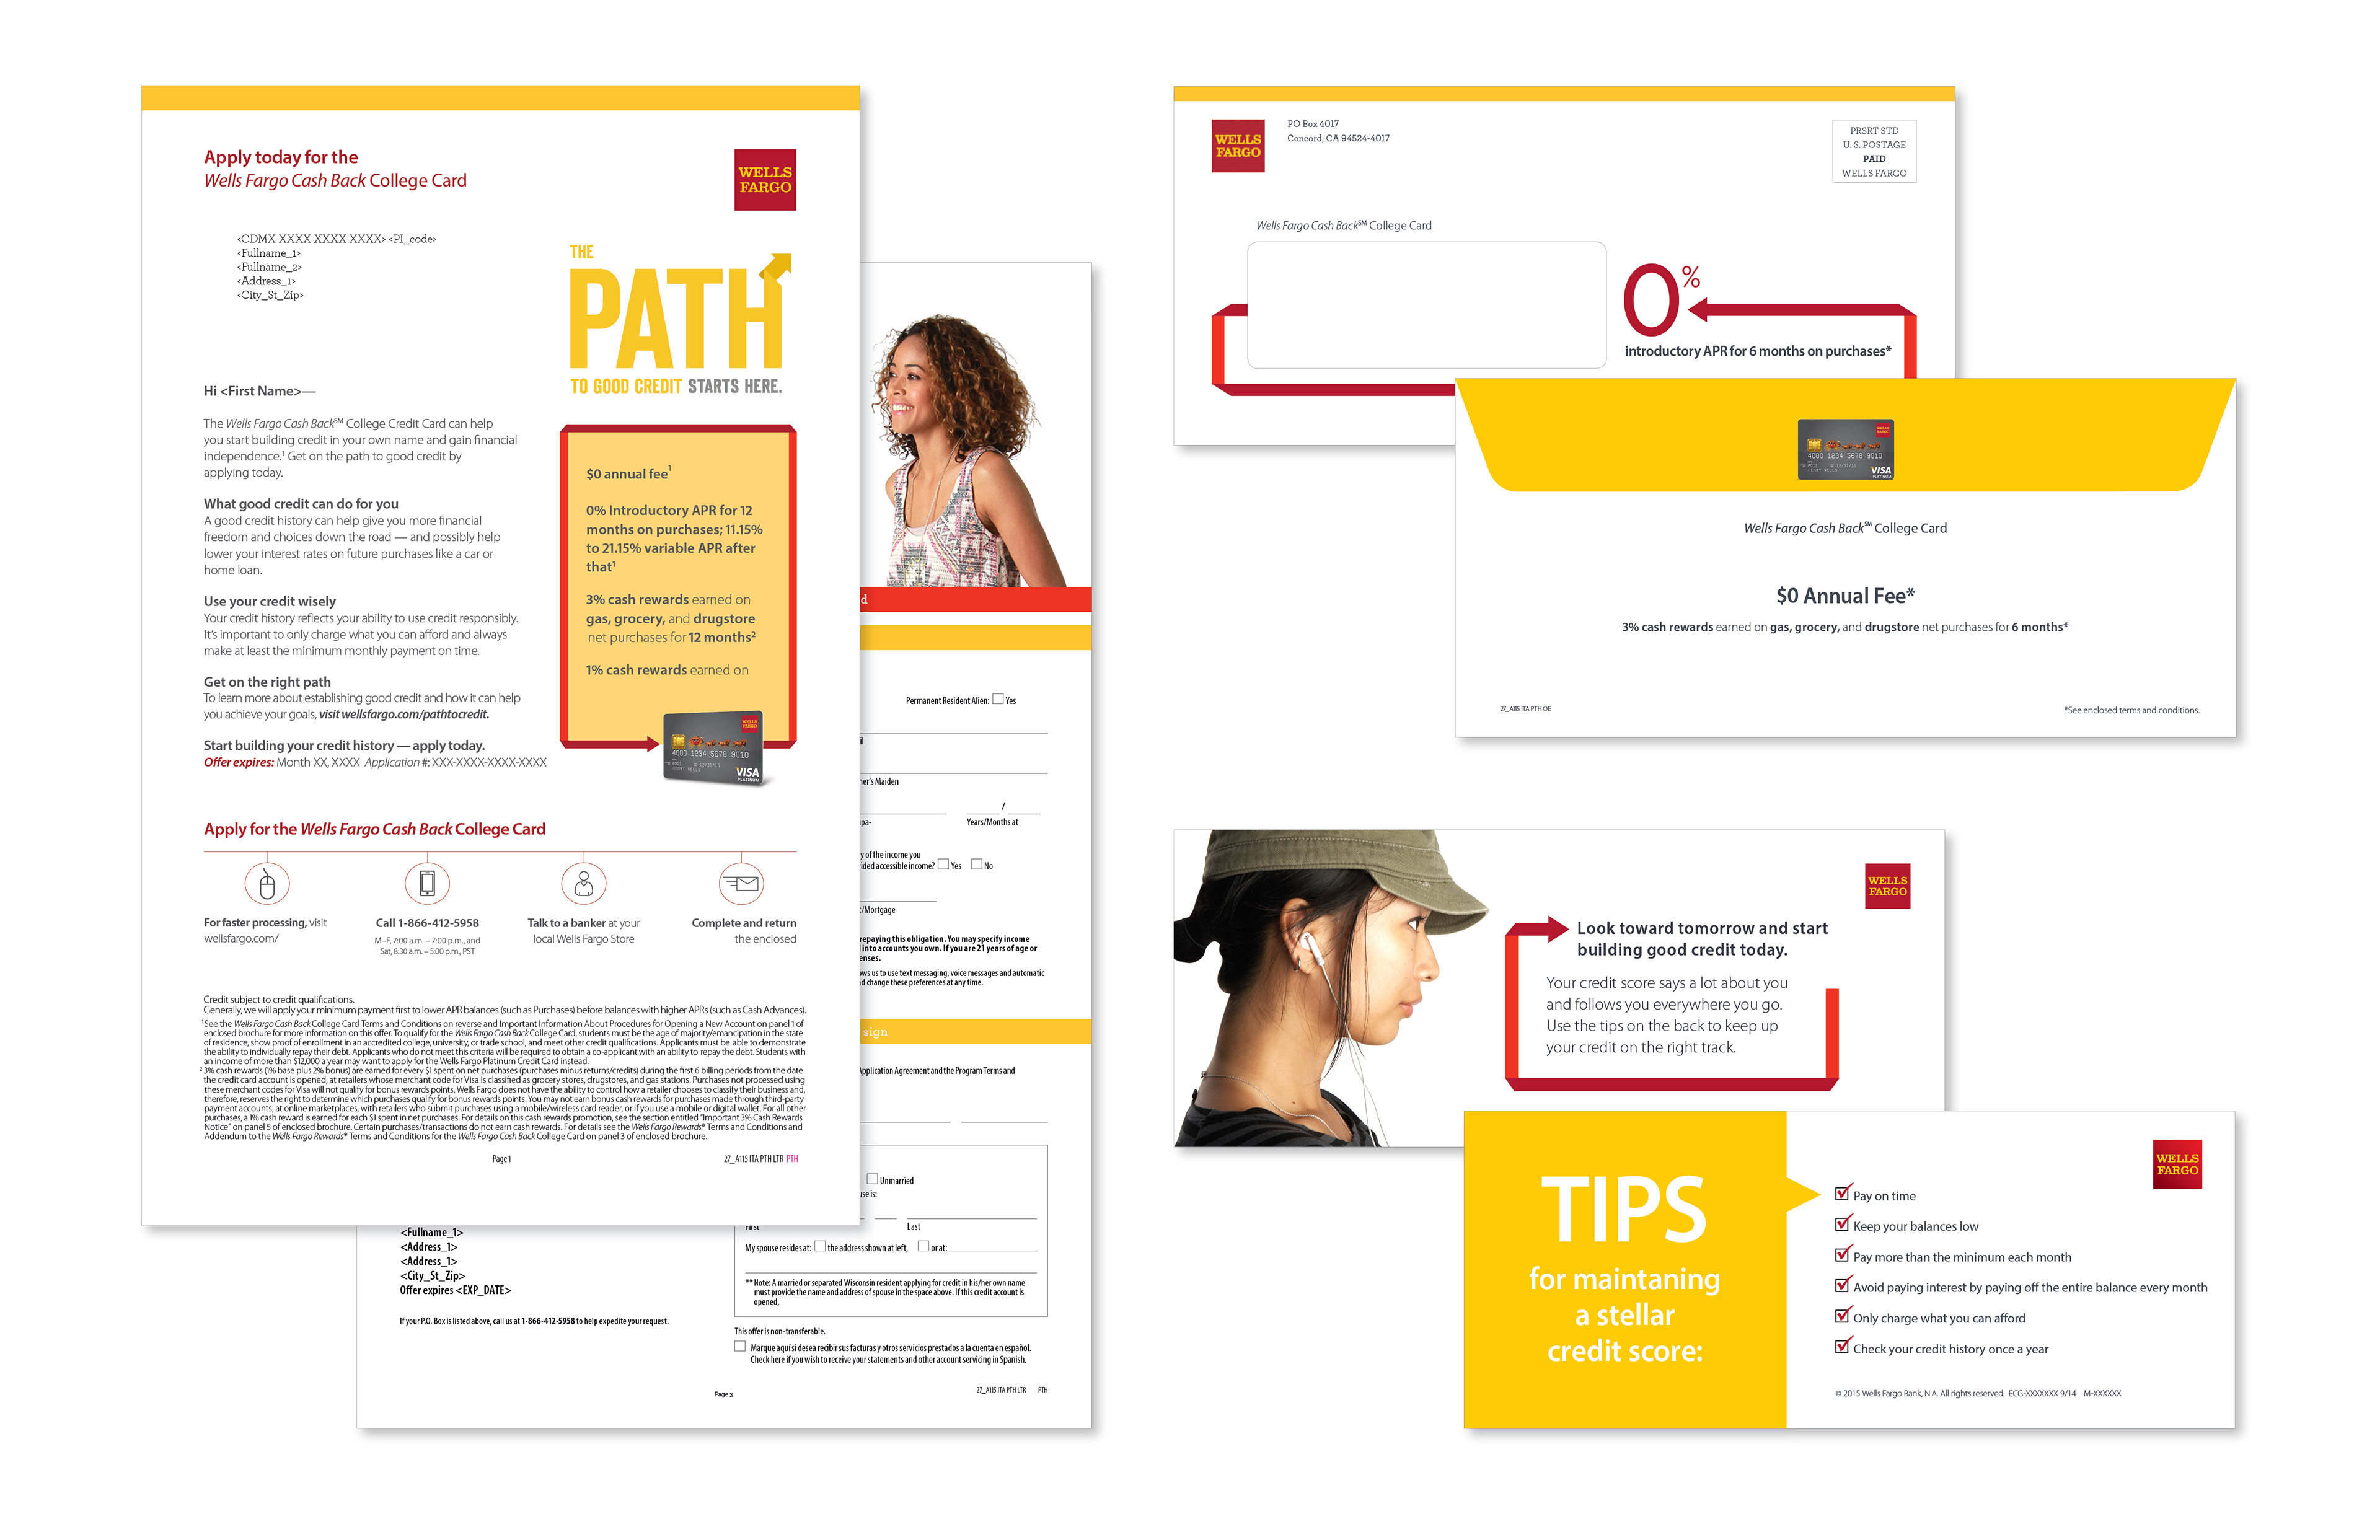 Phil Railey - Wells Fargo Credit Card DM Packages